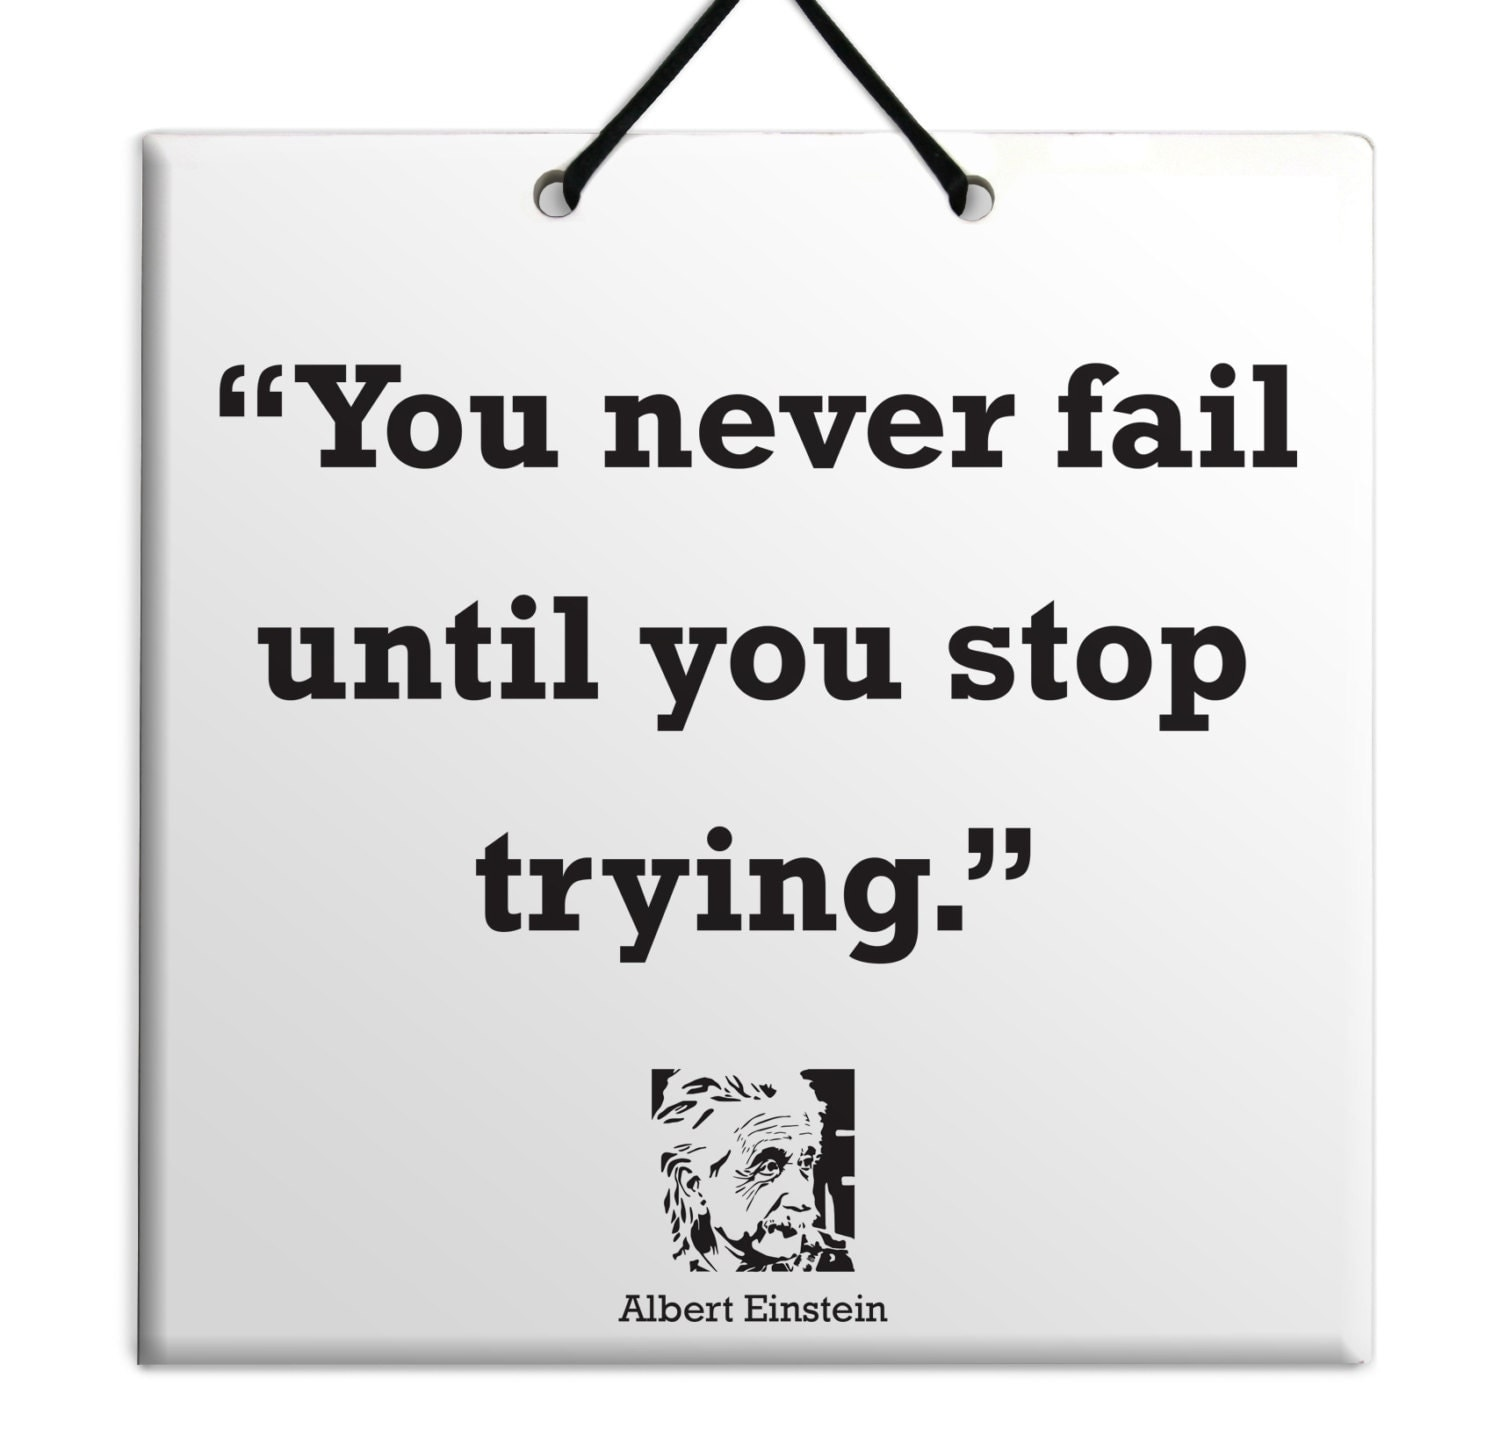 Inspirational Quotes About Failure: Albert Einstein You Never Fail Until You Stop Trying Quote